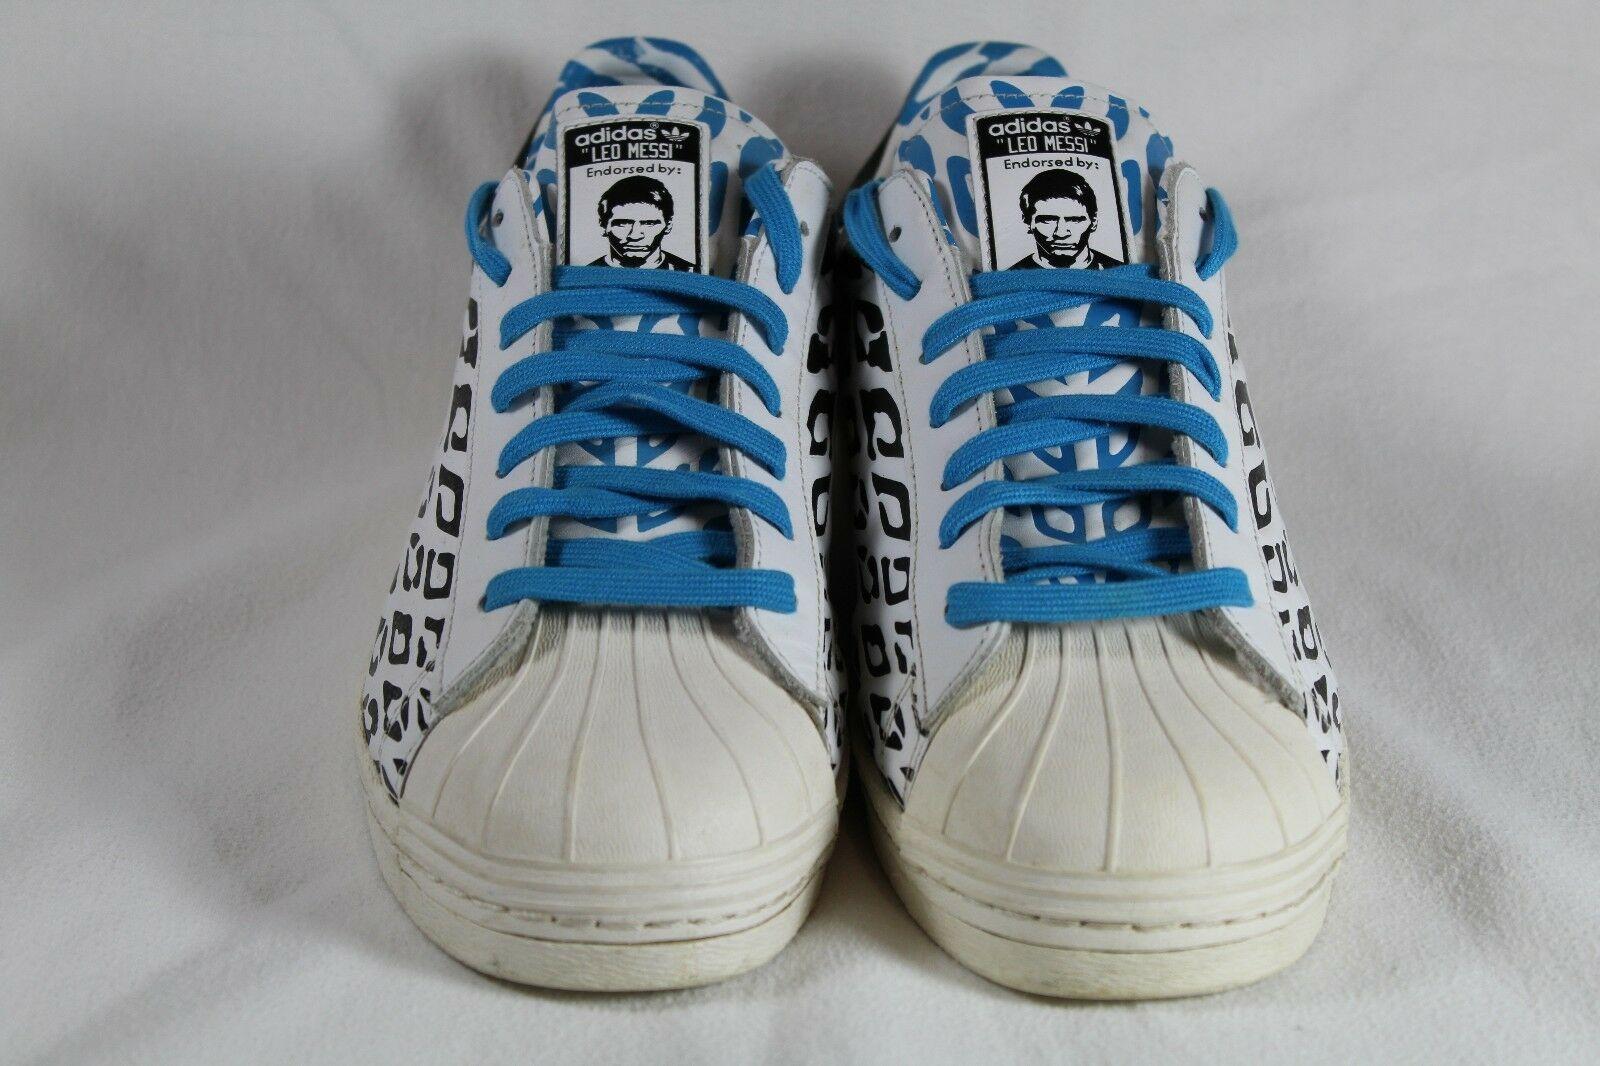 adidas Condition Superstar Messi Size 11.5 Pre-Owned Good Condition adidas M21779 13bc45